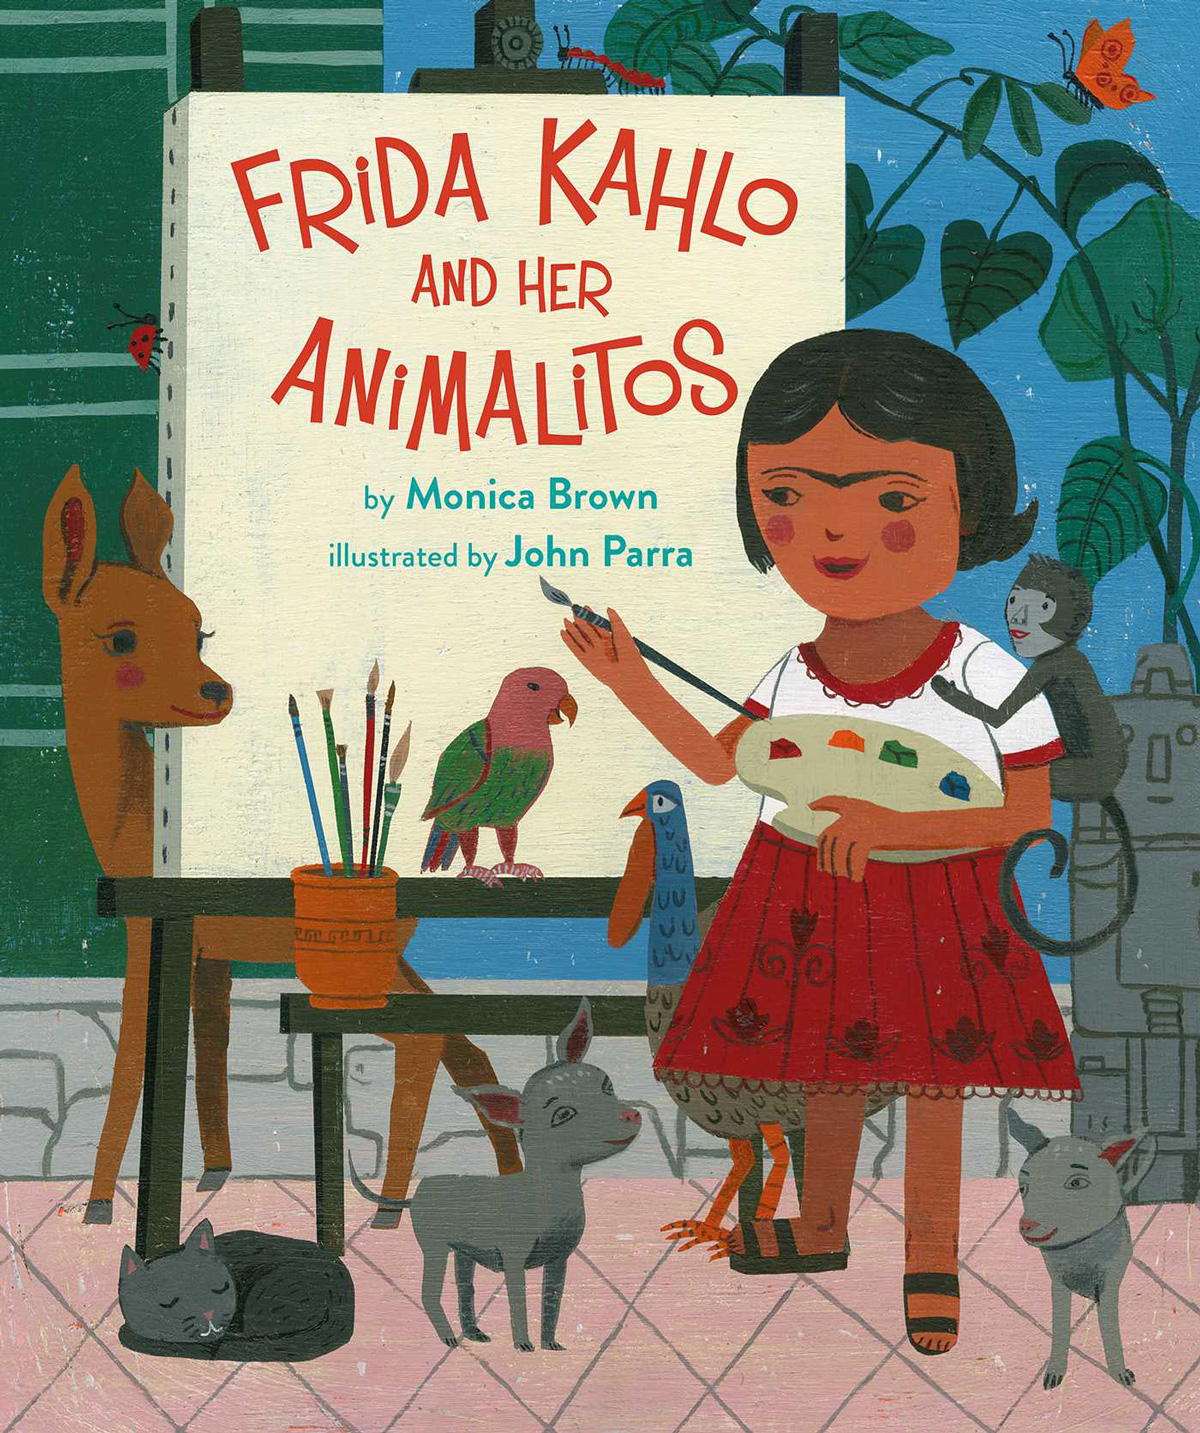 Frida Kahlo and Her Animalitos: An Illustrated Celebration of How the Pioneering Artist's Love of Animals Shaped Her Character